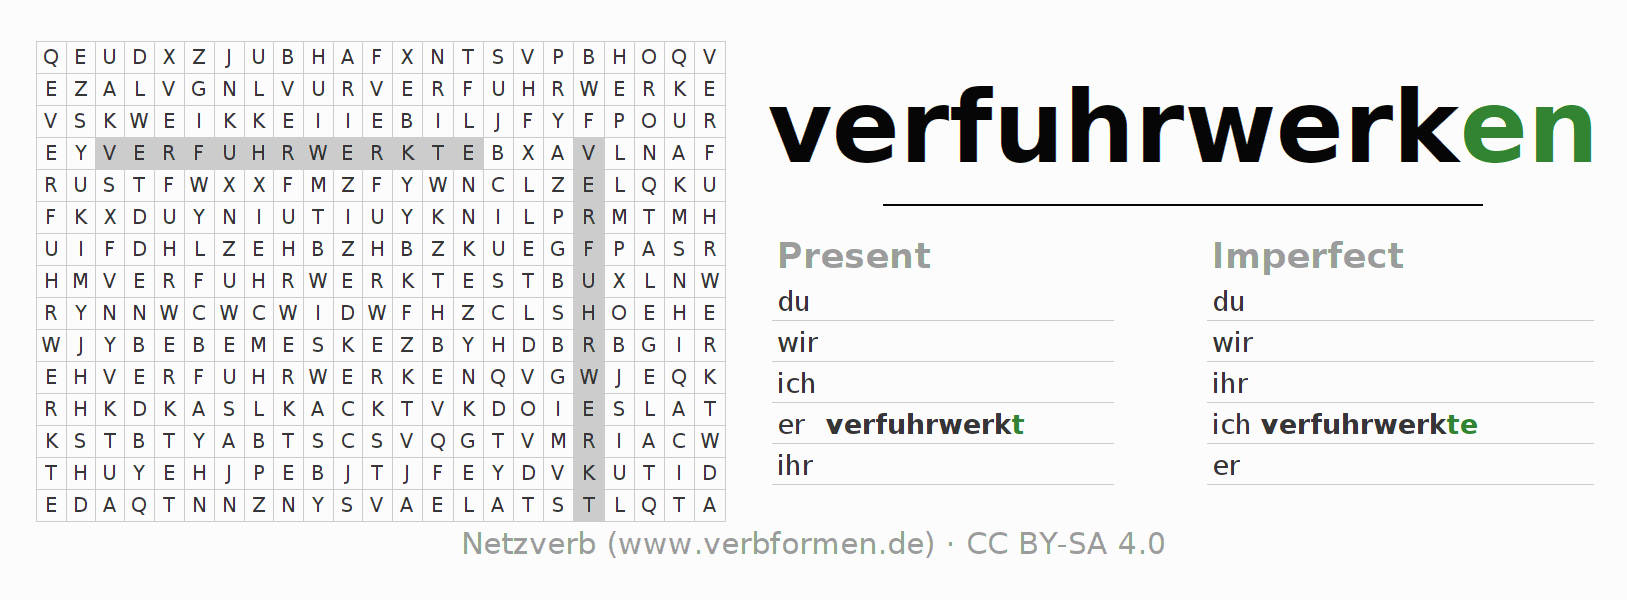 Word search puzzle for the conjugation of the verb verfuhrwerken